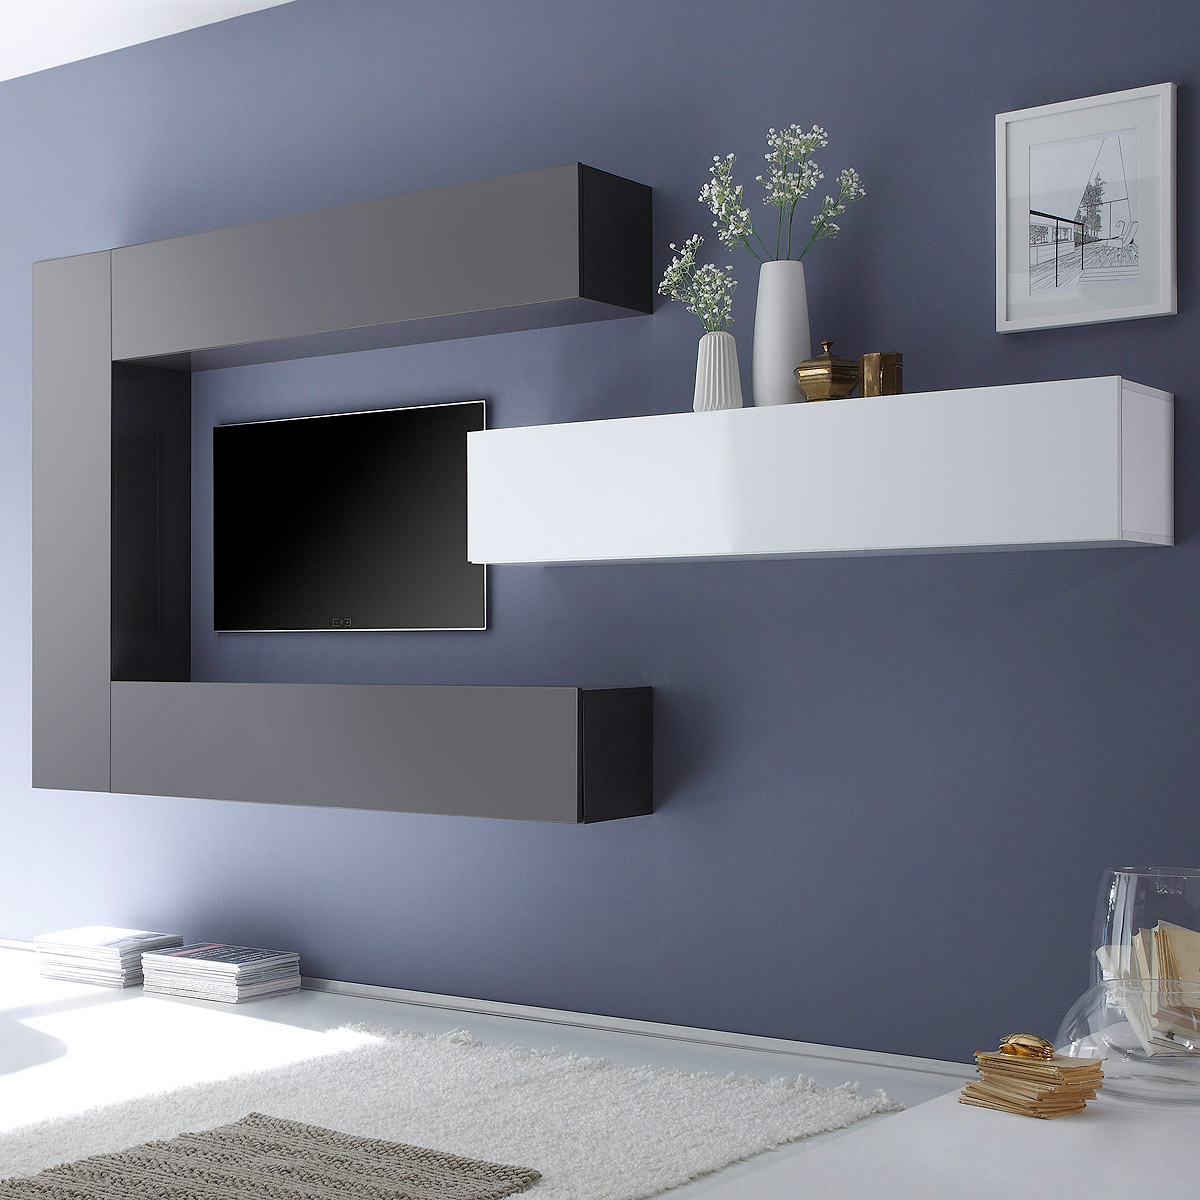 wohnwand cube kombi 2 anbauwand wei lack und anthrazit lack ebay. Black Bedroom Furniture Sets. Home Design Ideas